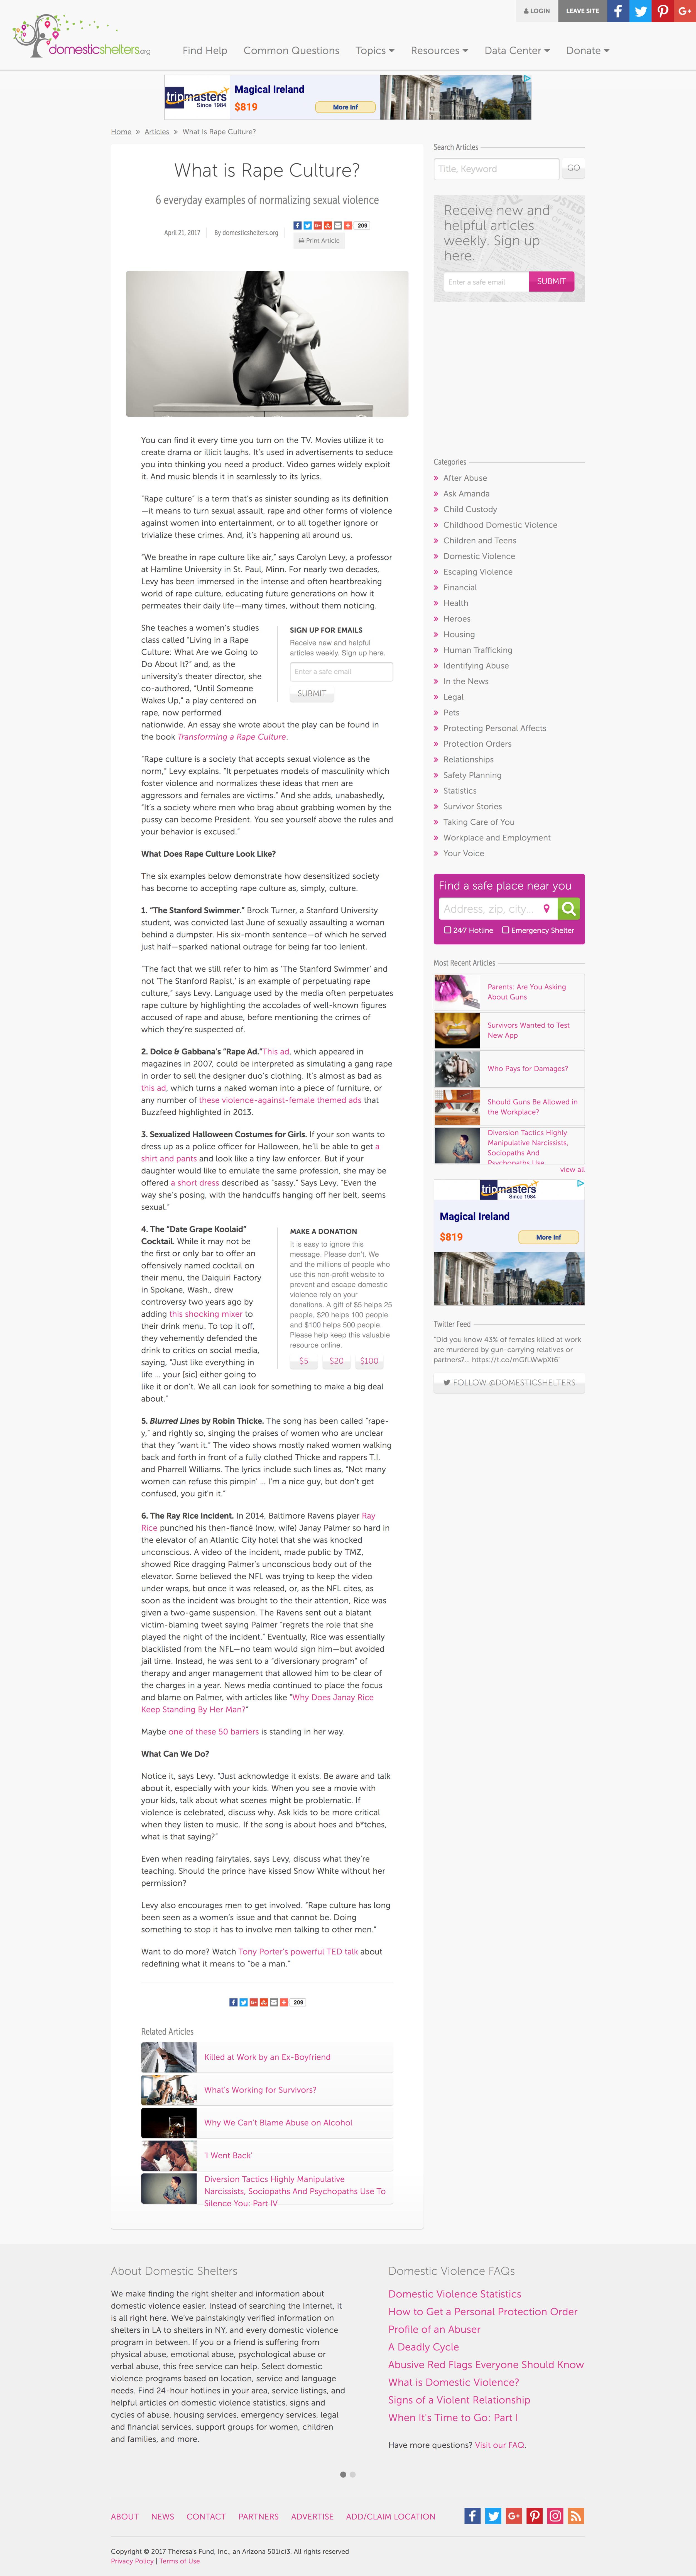 screencapture-domesticshelters-org-domestic-violence-articles-information-what-is-rape-culture-1498599378413.png